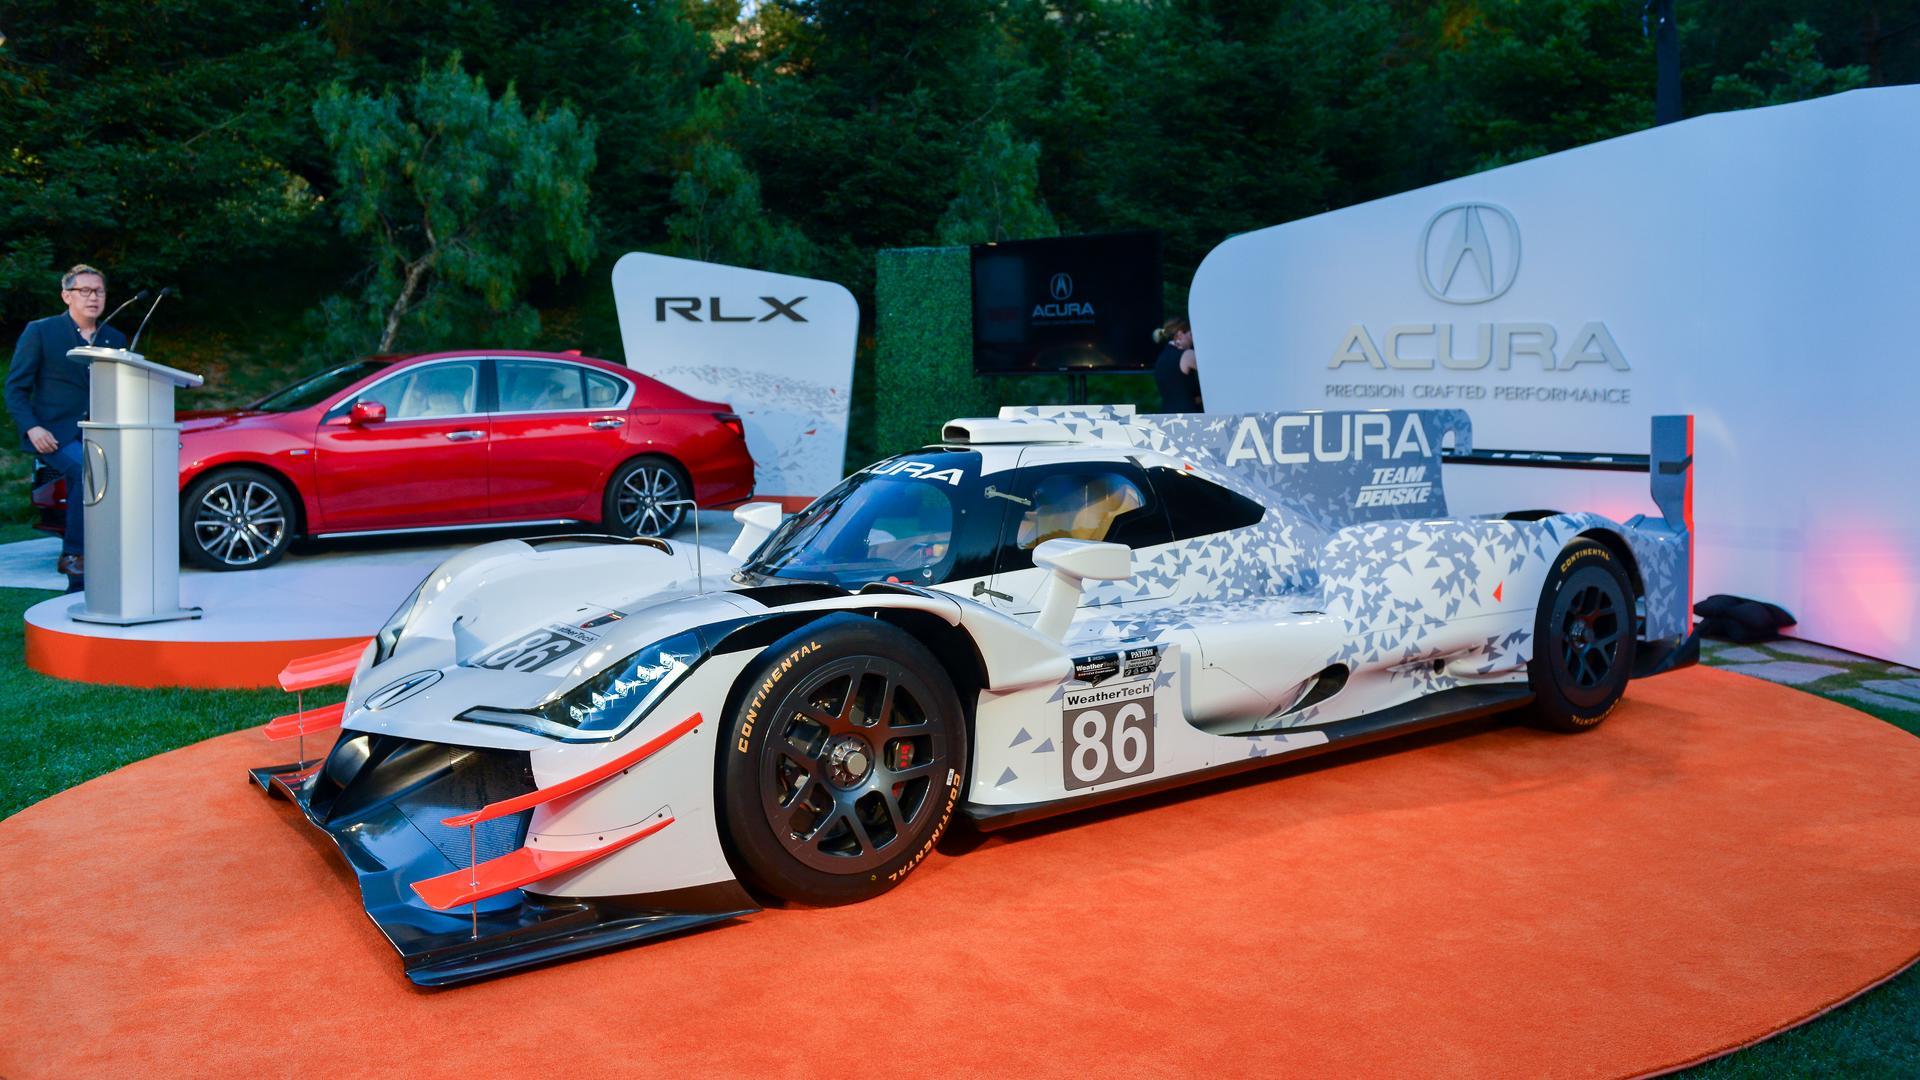 Acura Arx 05 Looks Race Ready In Monterey Hits The Track In 2018